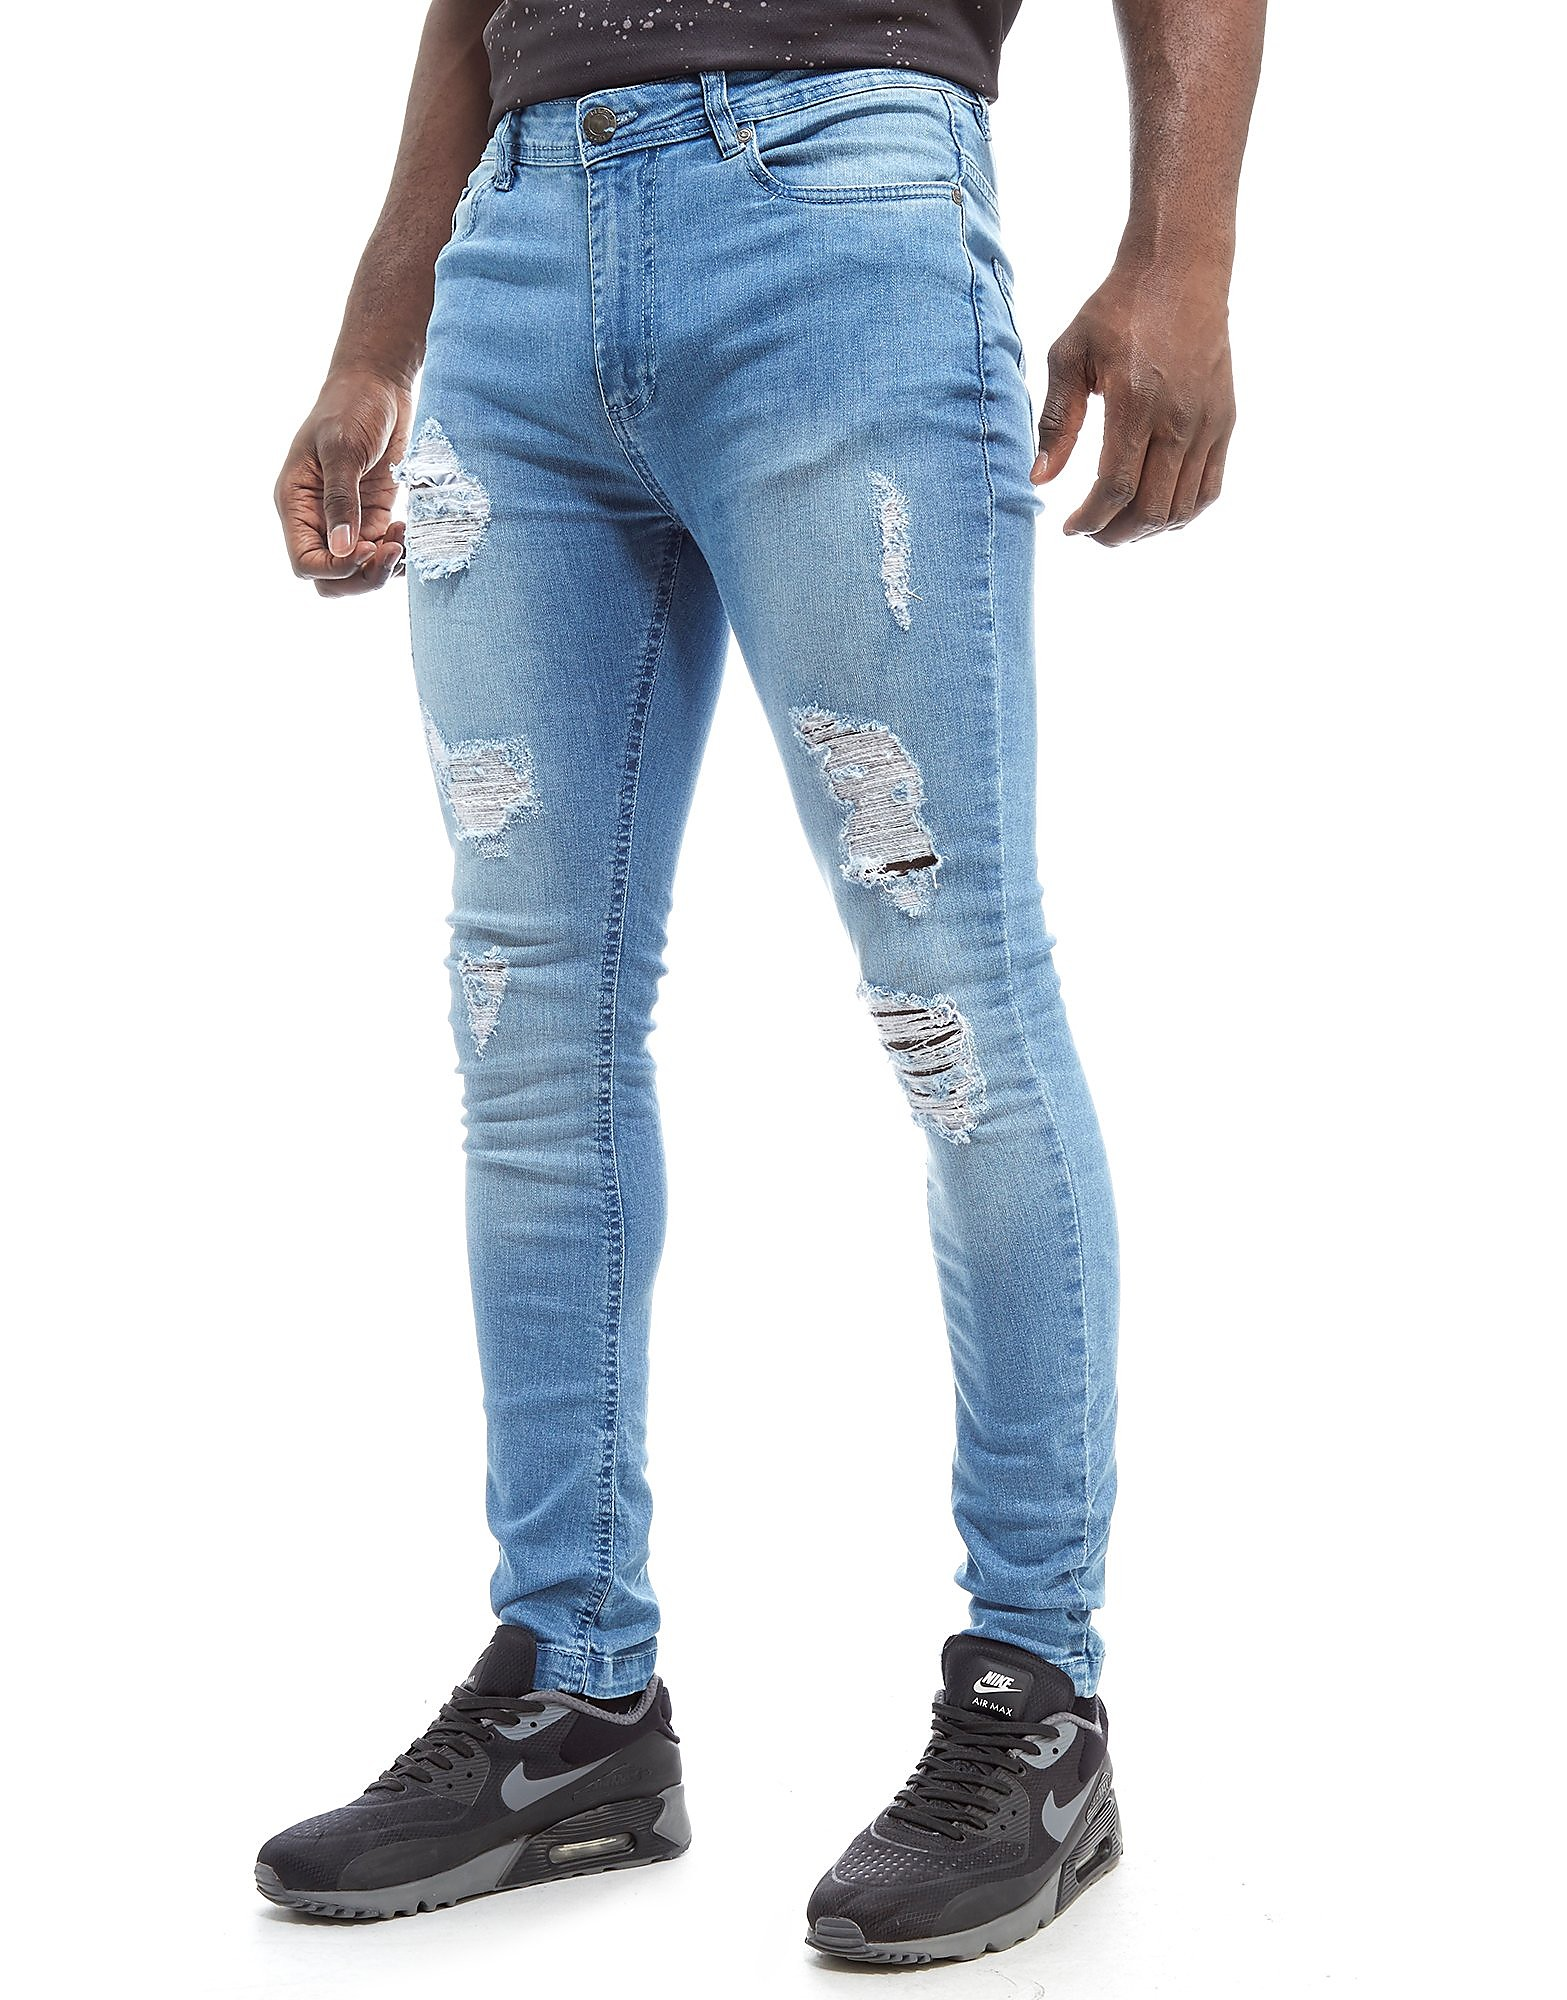 Supply & Demand Caliber Jeans